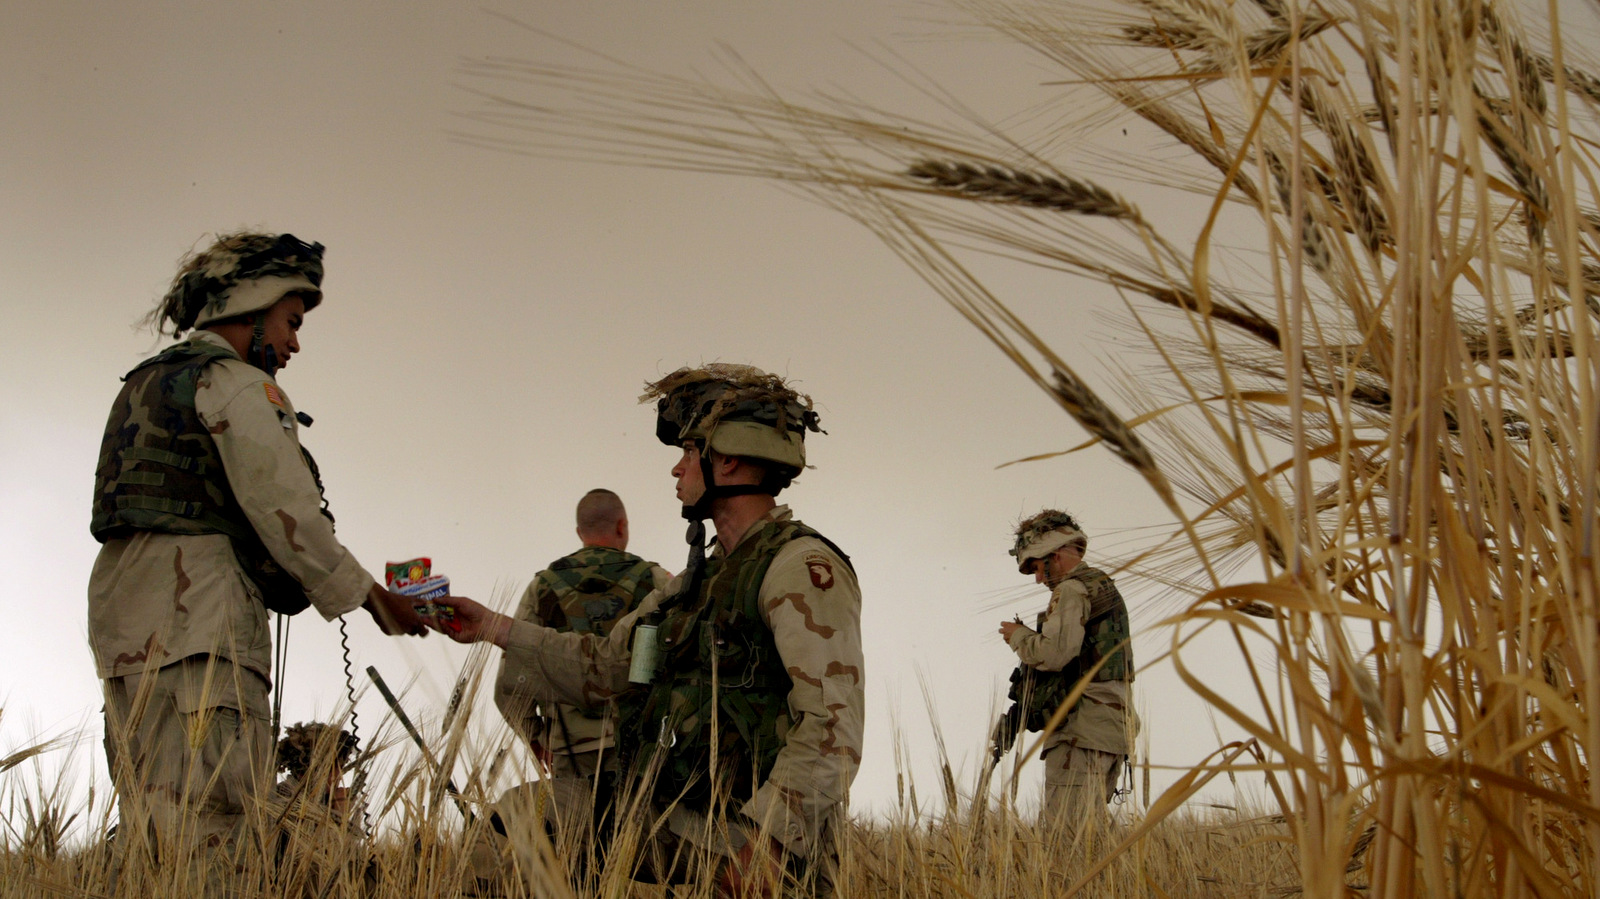 A U.S. Army soldier shares a bag of sunflower seeds with a fellow soldier, as they wait for a helicopter to pick them up in a field of barley nearly ready to harvest, outside Tall Ash Shawr, a village in northwestern Iraq, Monday, May 19, 2003. (AP/Brennan Linsley)